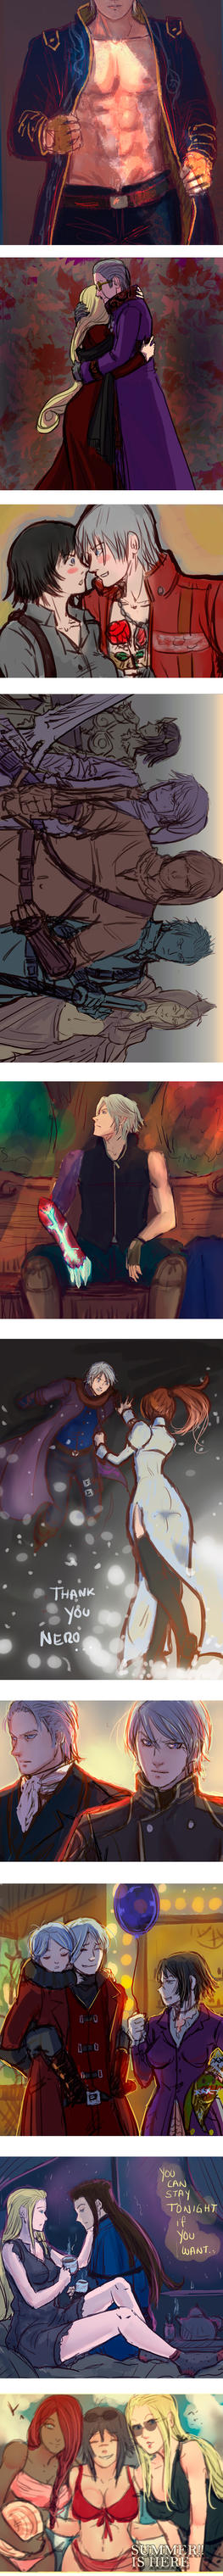 +(- Devil may cry doodles [6] -)+ by AngelJasiel